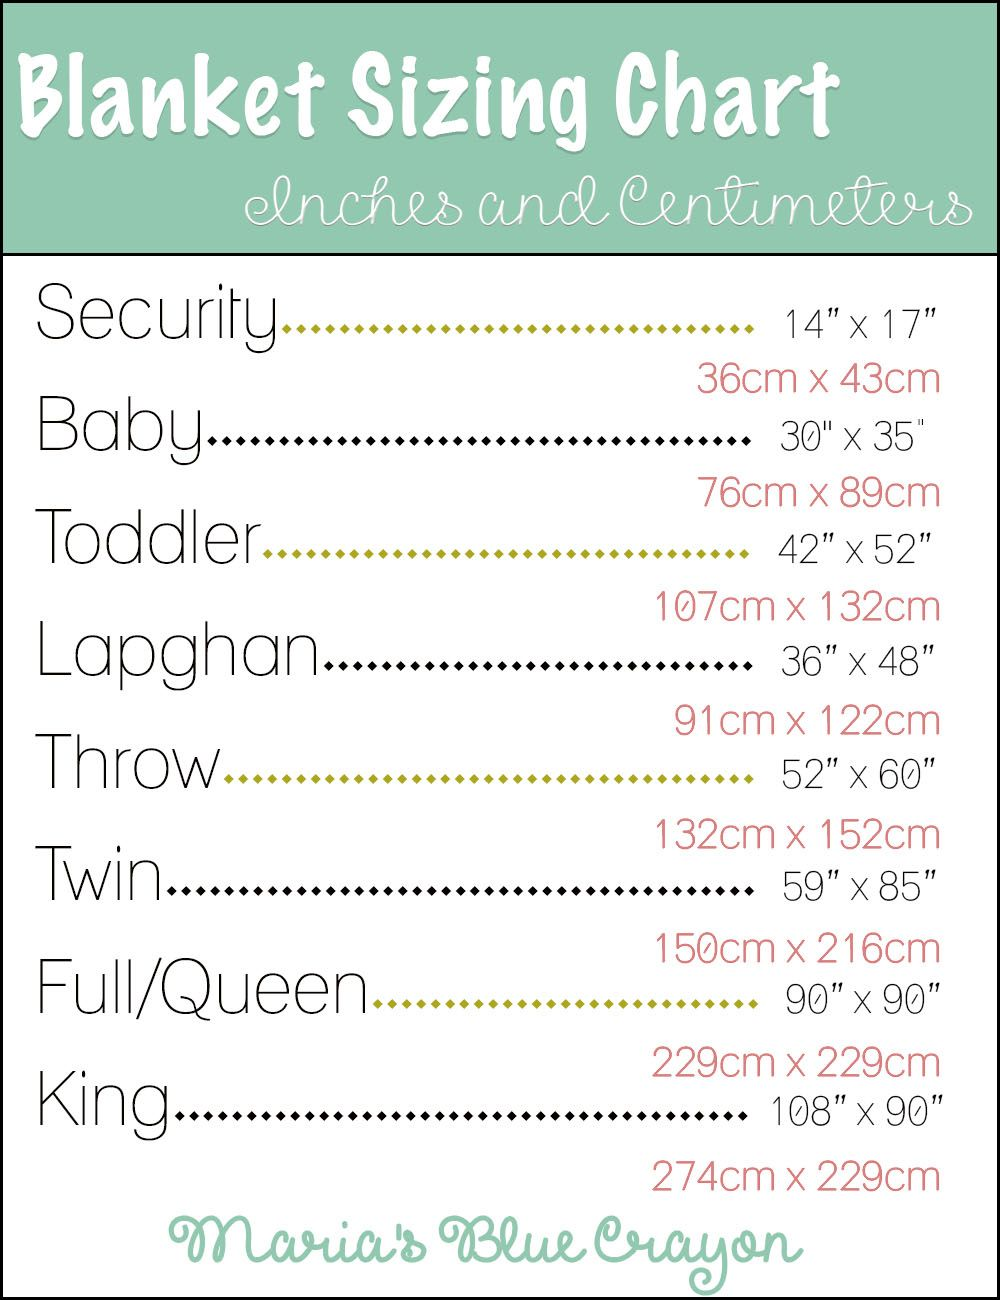 medium resolution of blanket sizing in inches and centimeters chart to help guide you in sizing your blanket knit crochet etc